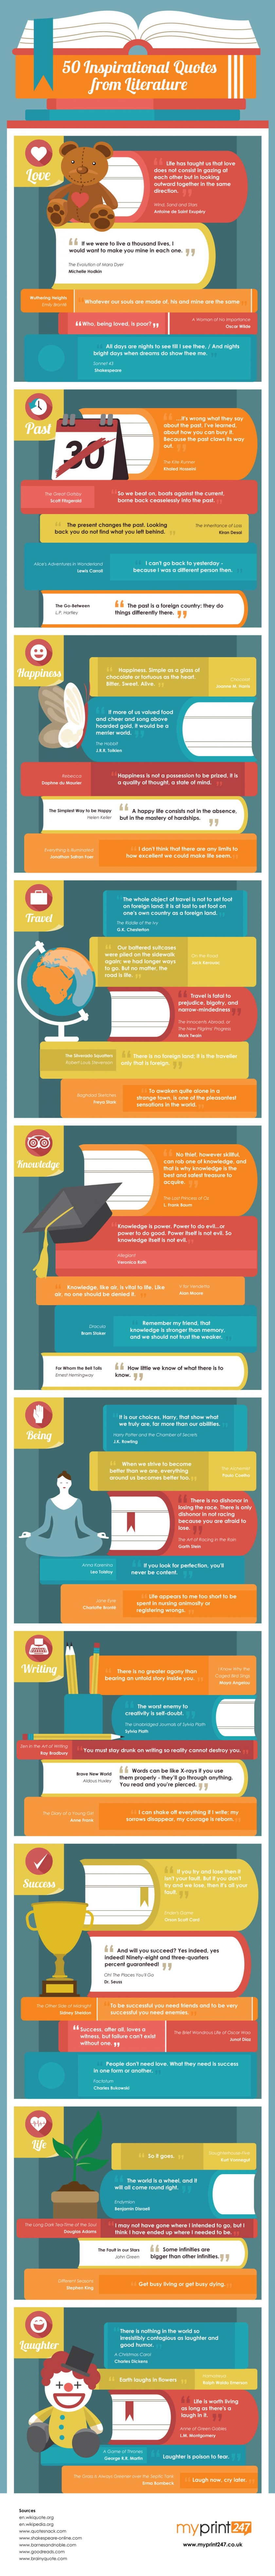 50 most inspirational quotes from literature #infographic